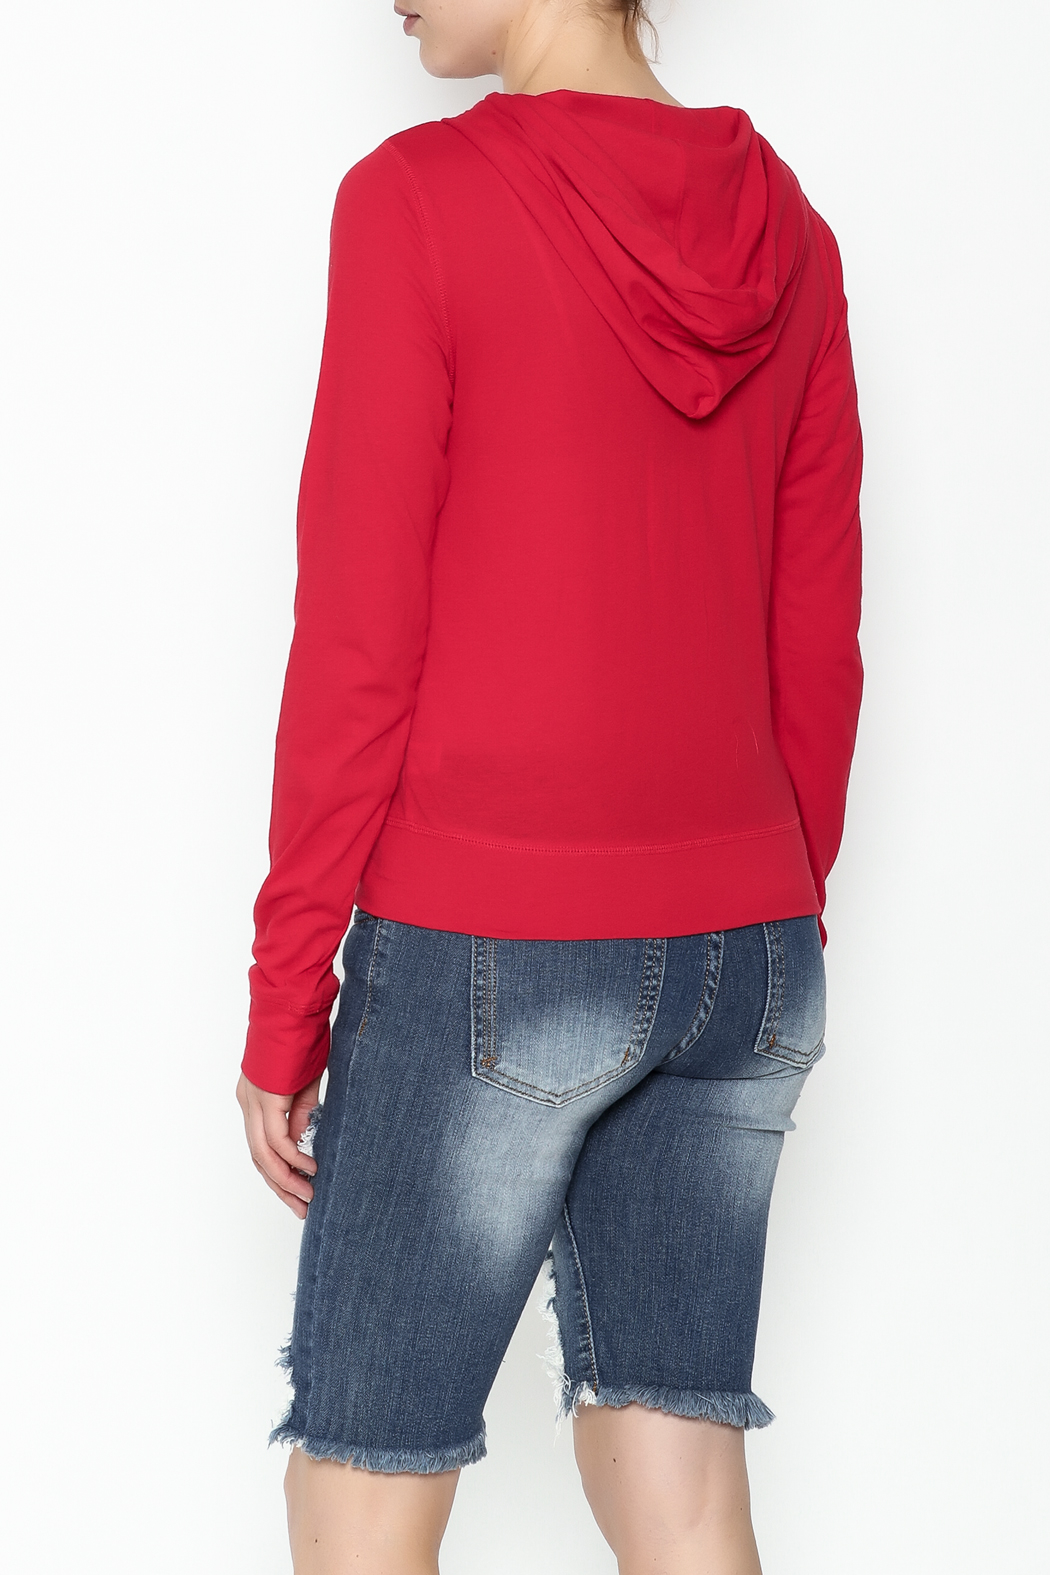 Daisy's Fashions Melange Zip Up Hoodie - Back Cropped Image